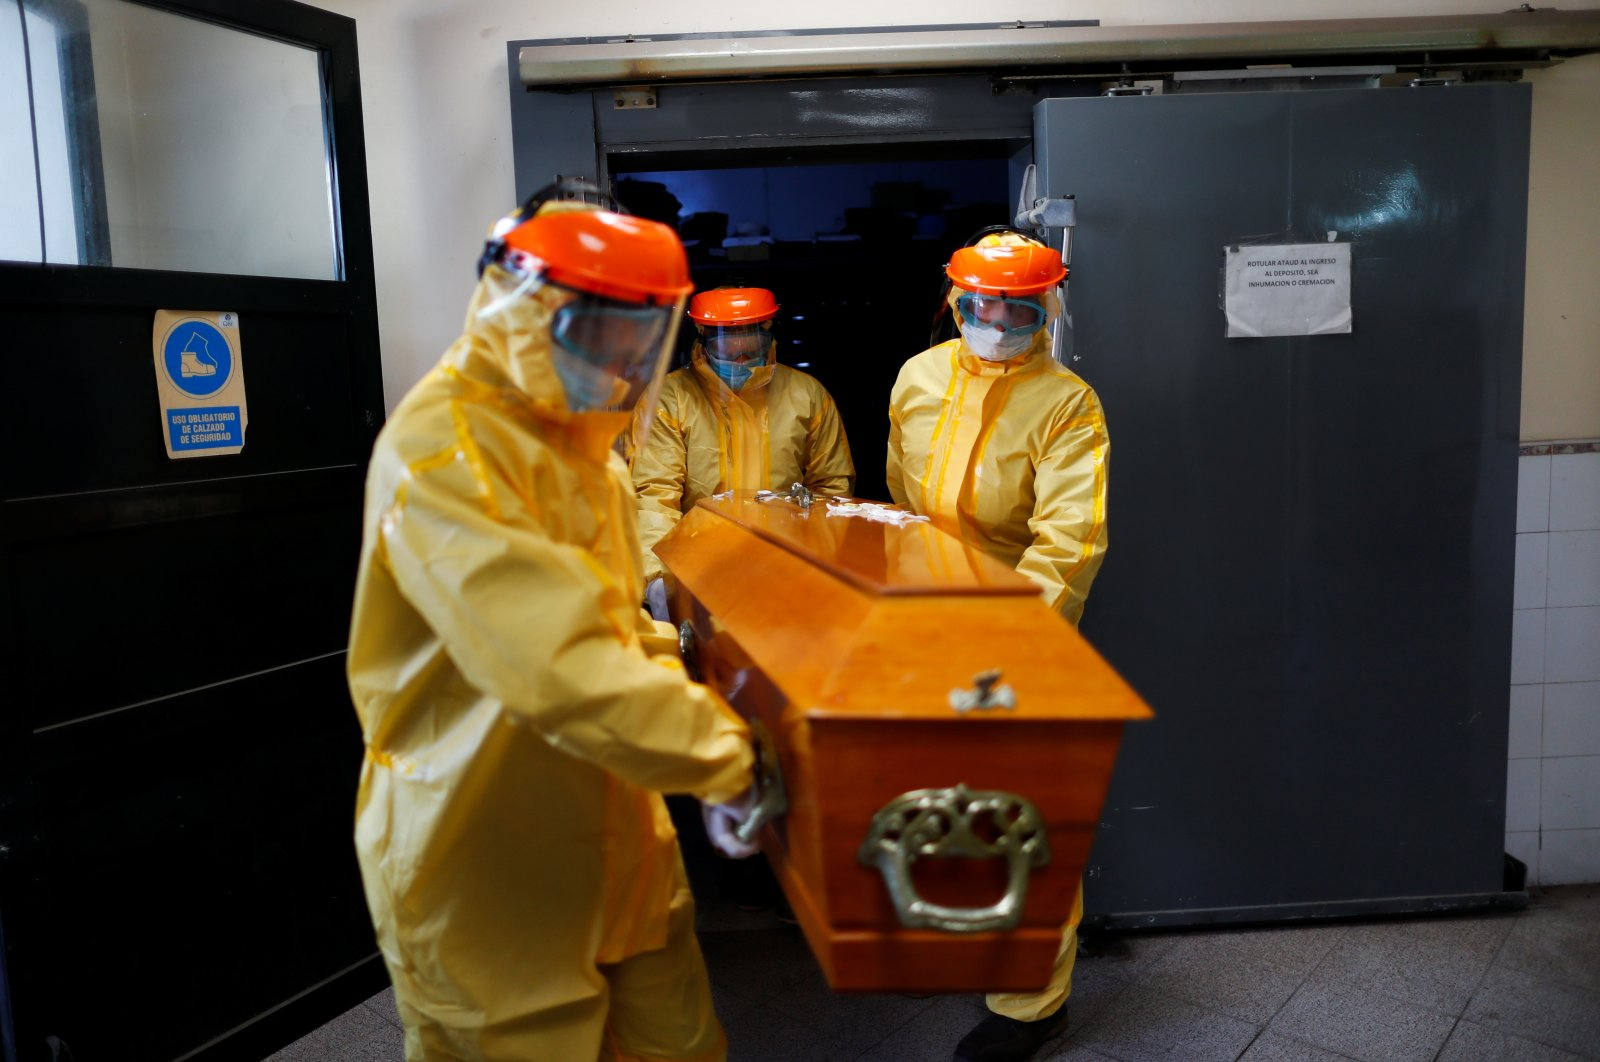 Ernesto Fabian Aguirre, a gravedigger in Memorial Cemetery, carries a coffin with his coworkers wearing protective equipment during an exercise for coronavirus disease (COVID-19) burials, after deaths surpass 70,000 amid a strong second wave of the pandemic and a slow vaccination process, in Buenos Aires, Argentina, May 17, 2021. (Reuters Photo)